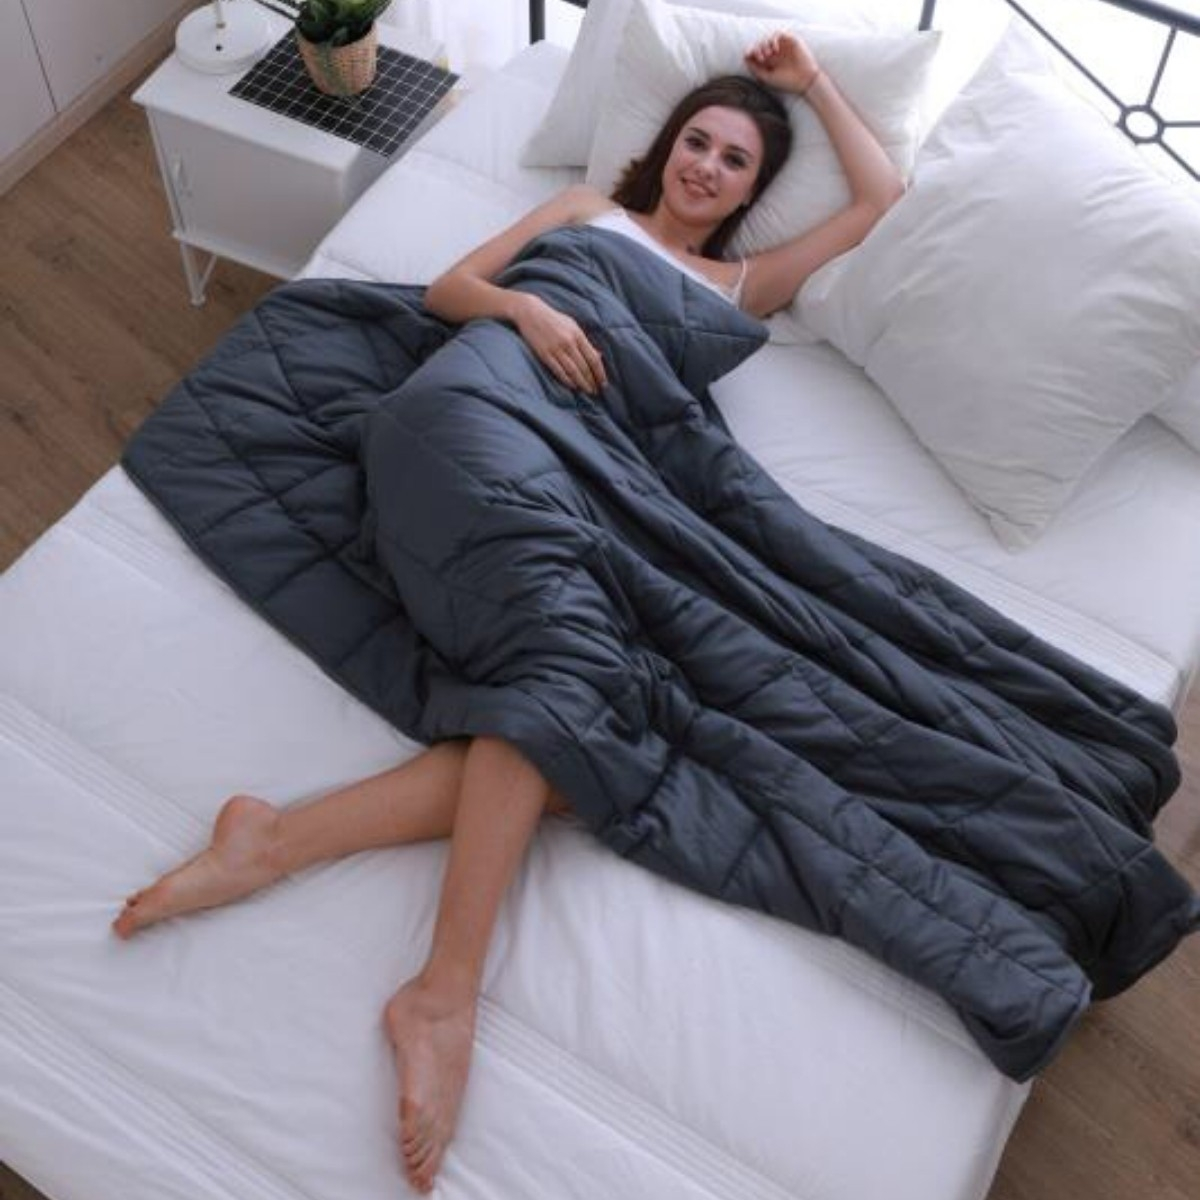 zensleep-weighted-blanket-sleeping-girl